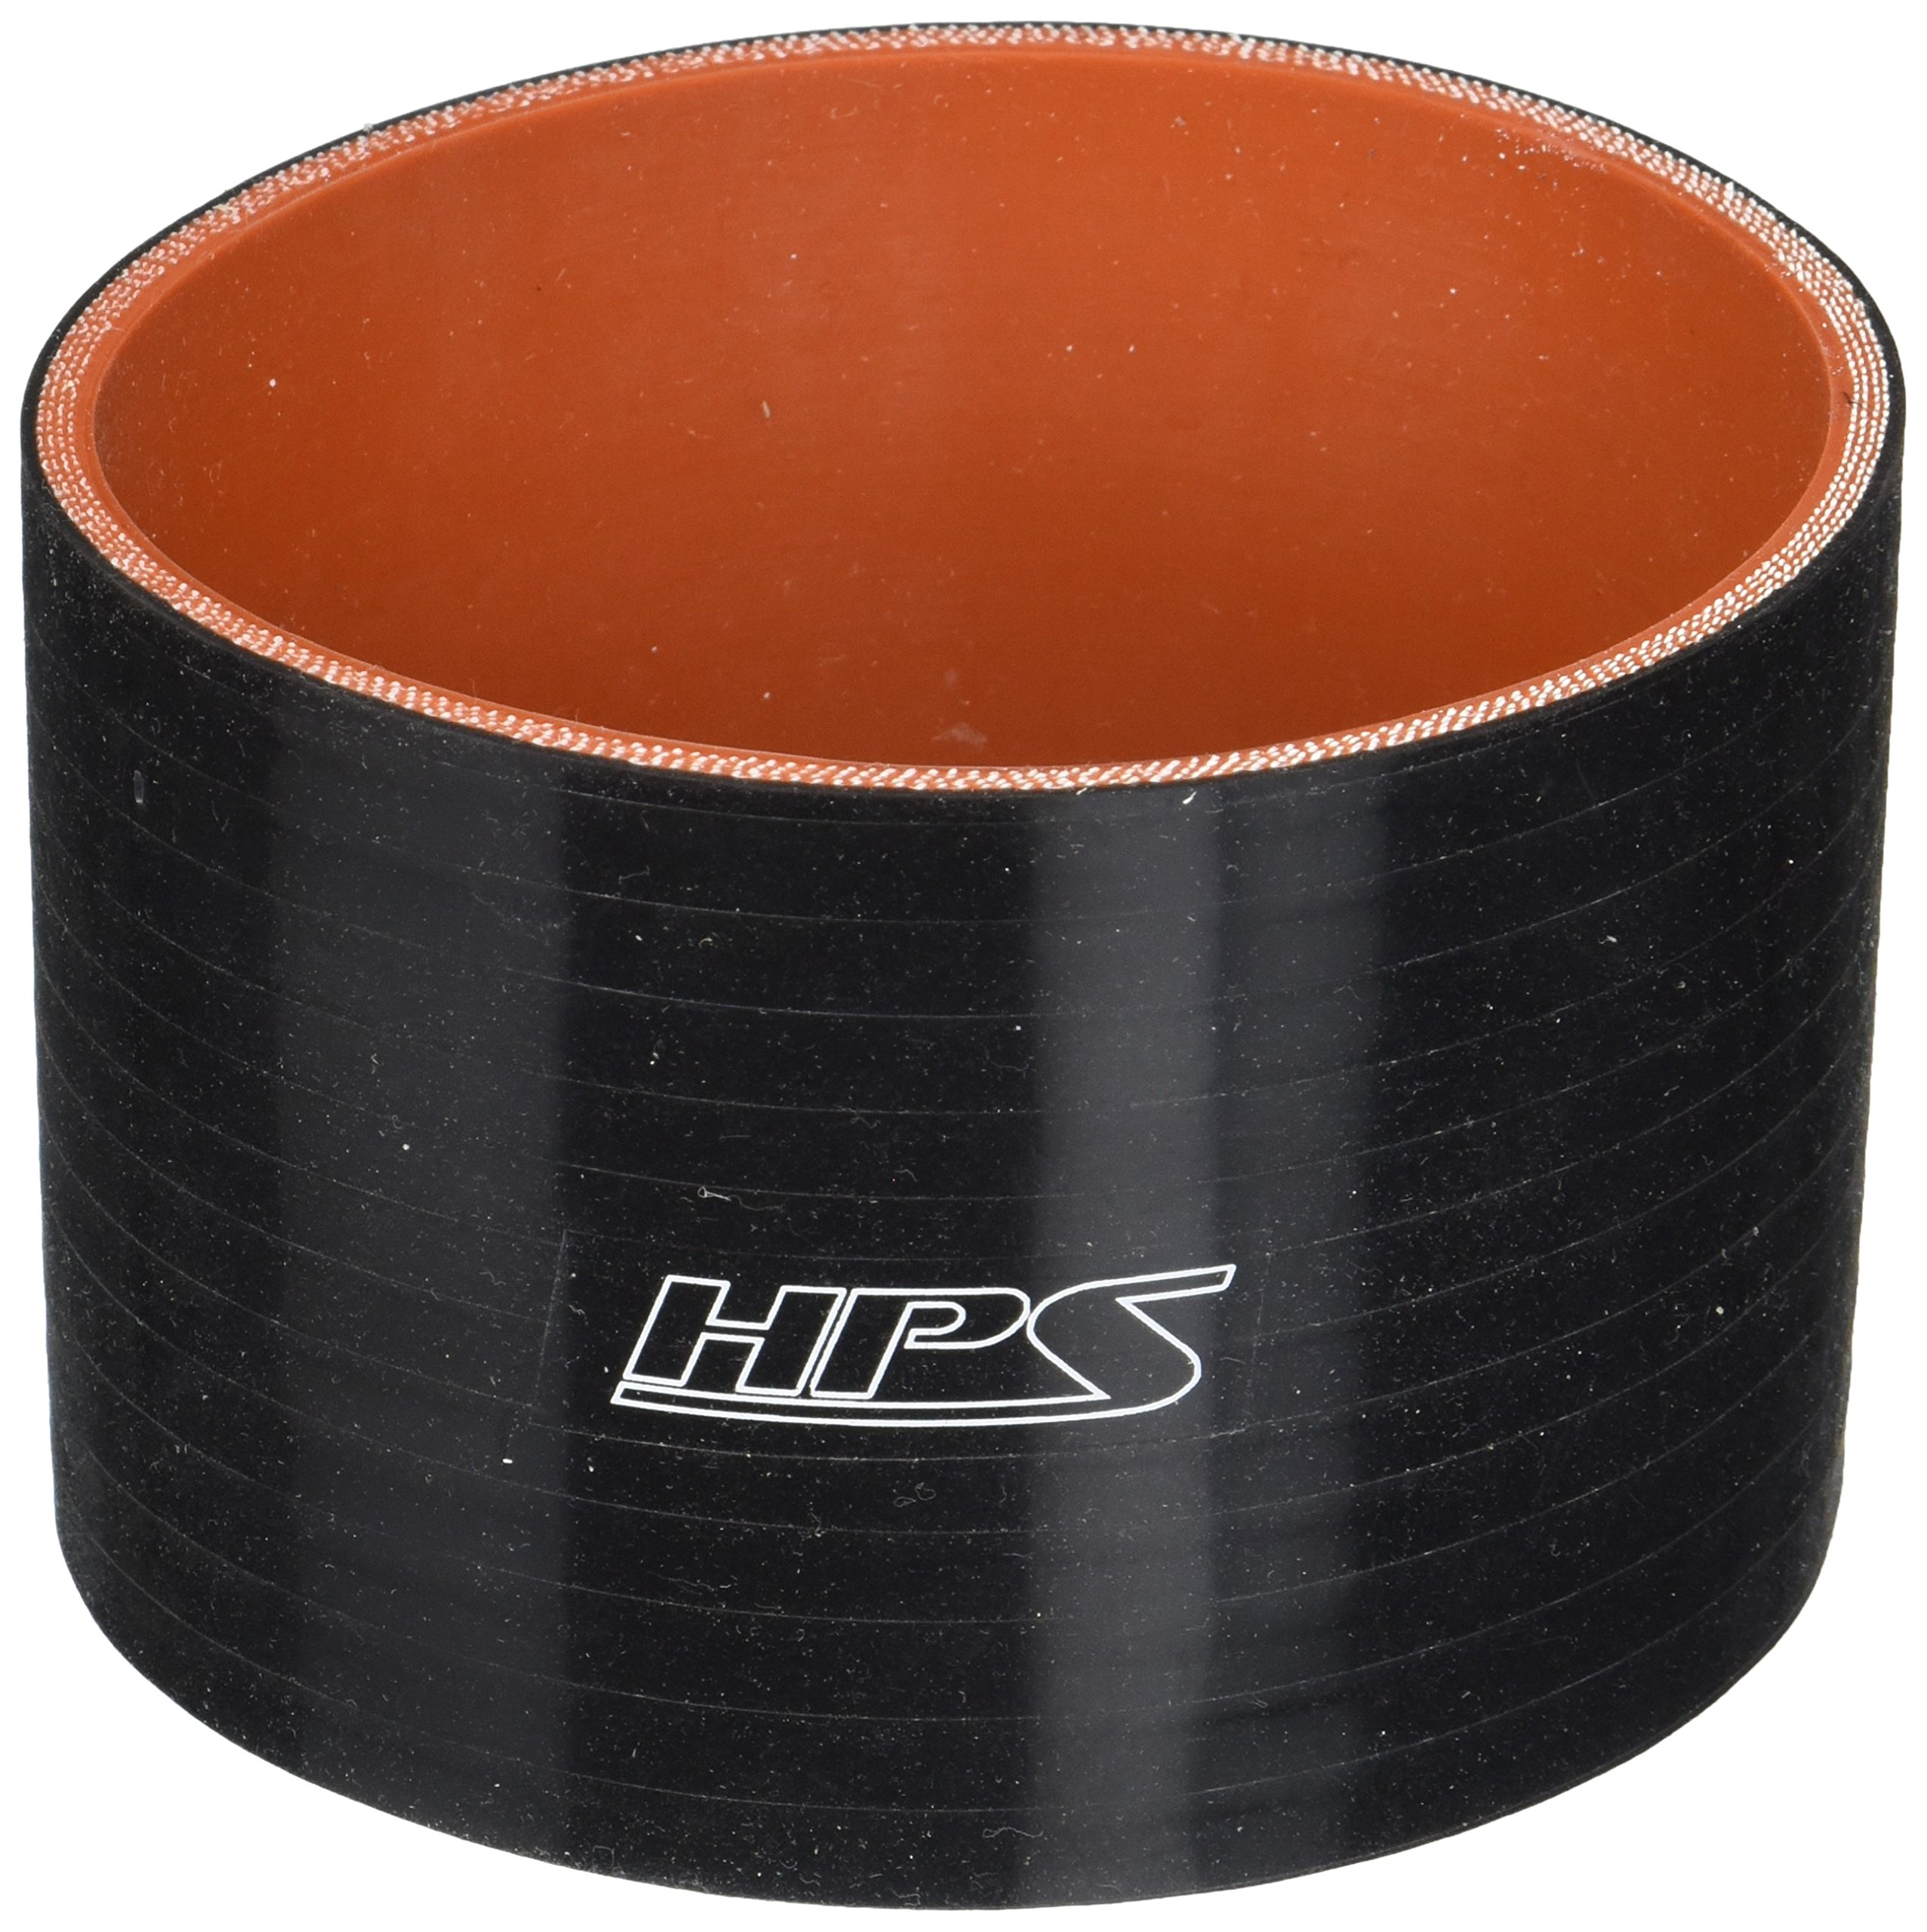 HPS HTSC-425-BLK Silicone High Temperature 4-Ply Reinforced Straight Coupler Hose, 65 PSI Maximum Pressure, 3'' Length, 4.25'' ID, Black by HPS (Image #1)